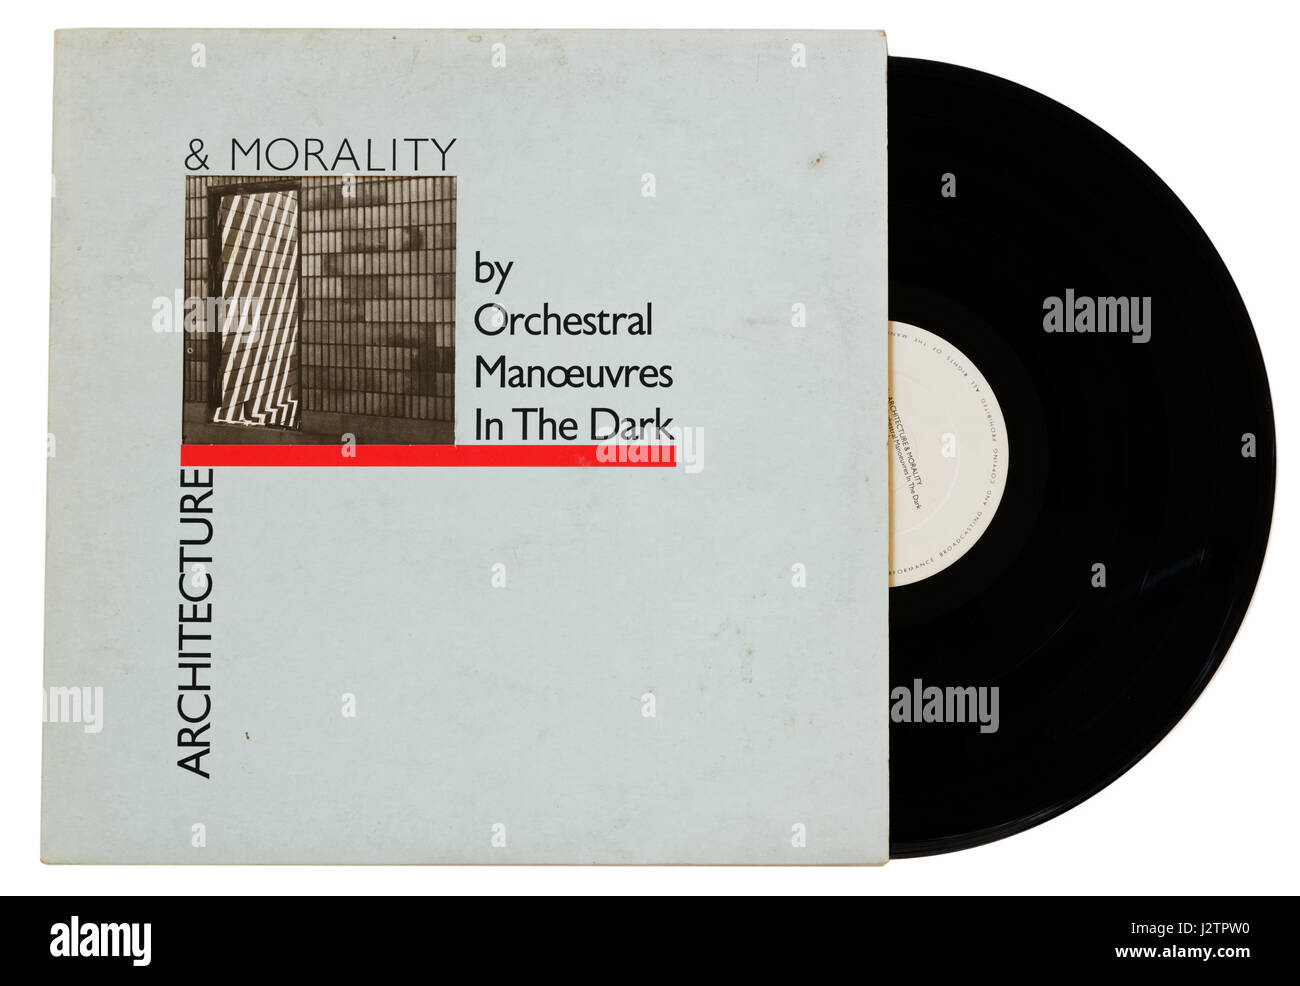 Orchestral manoeuvres in the Dark album Architecture et la moralité sur vinyle Photo Stock